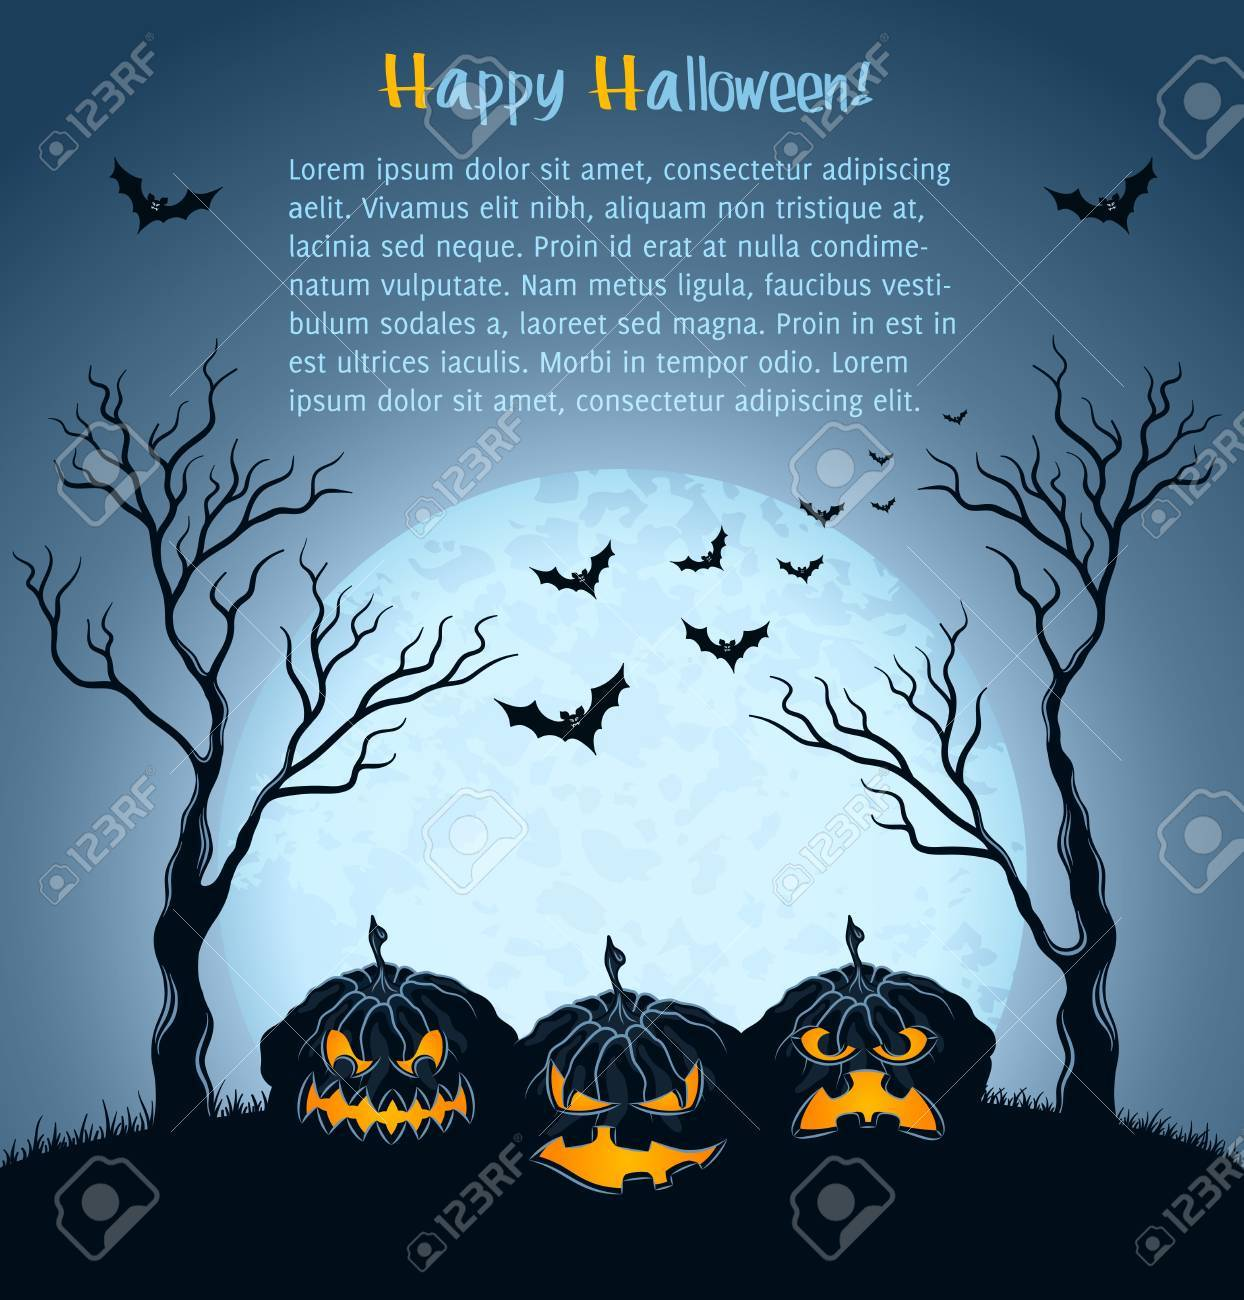 Halloween background with pumpkins, full moon and tree Stock Vector - 15330541